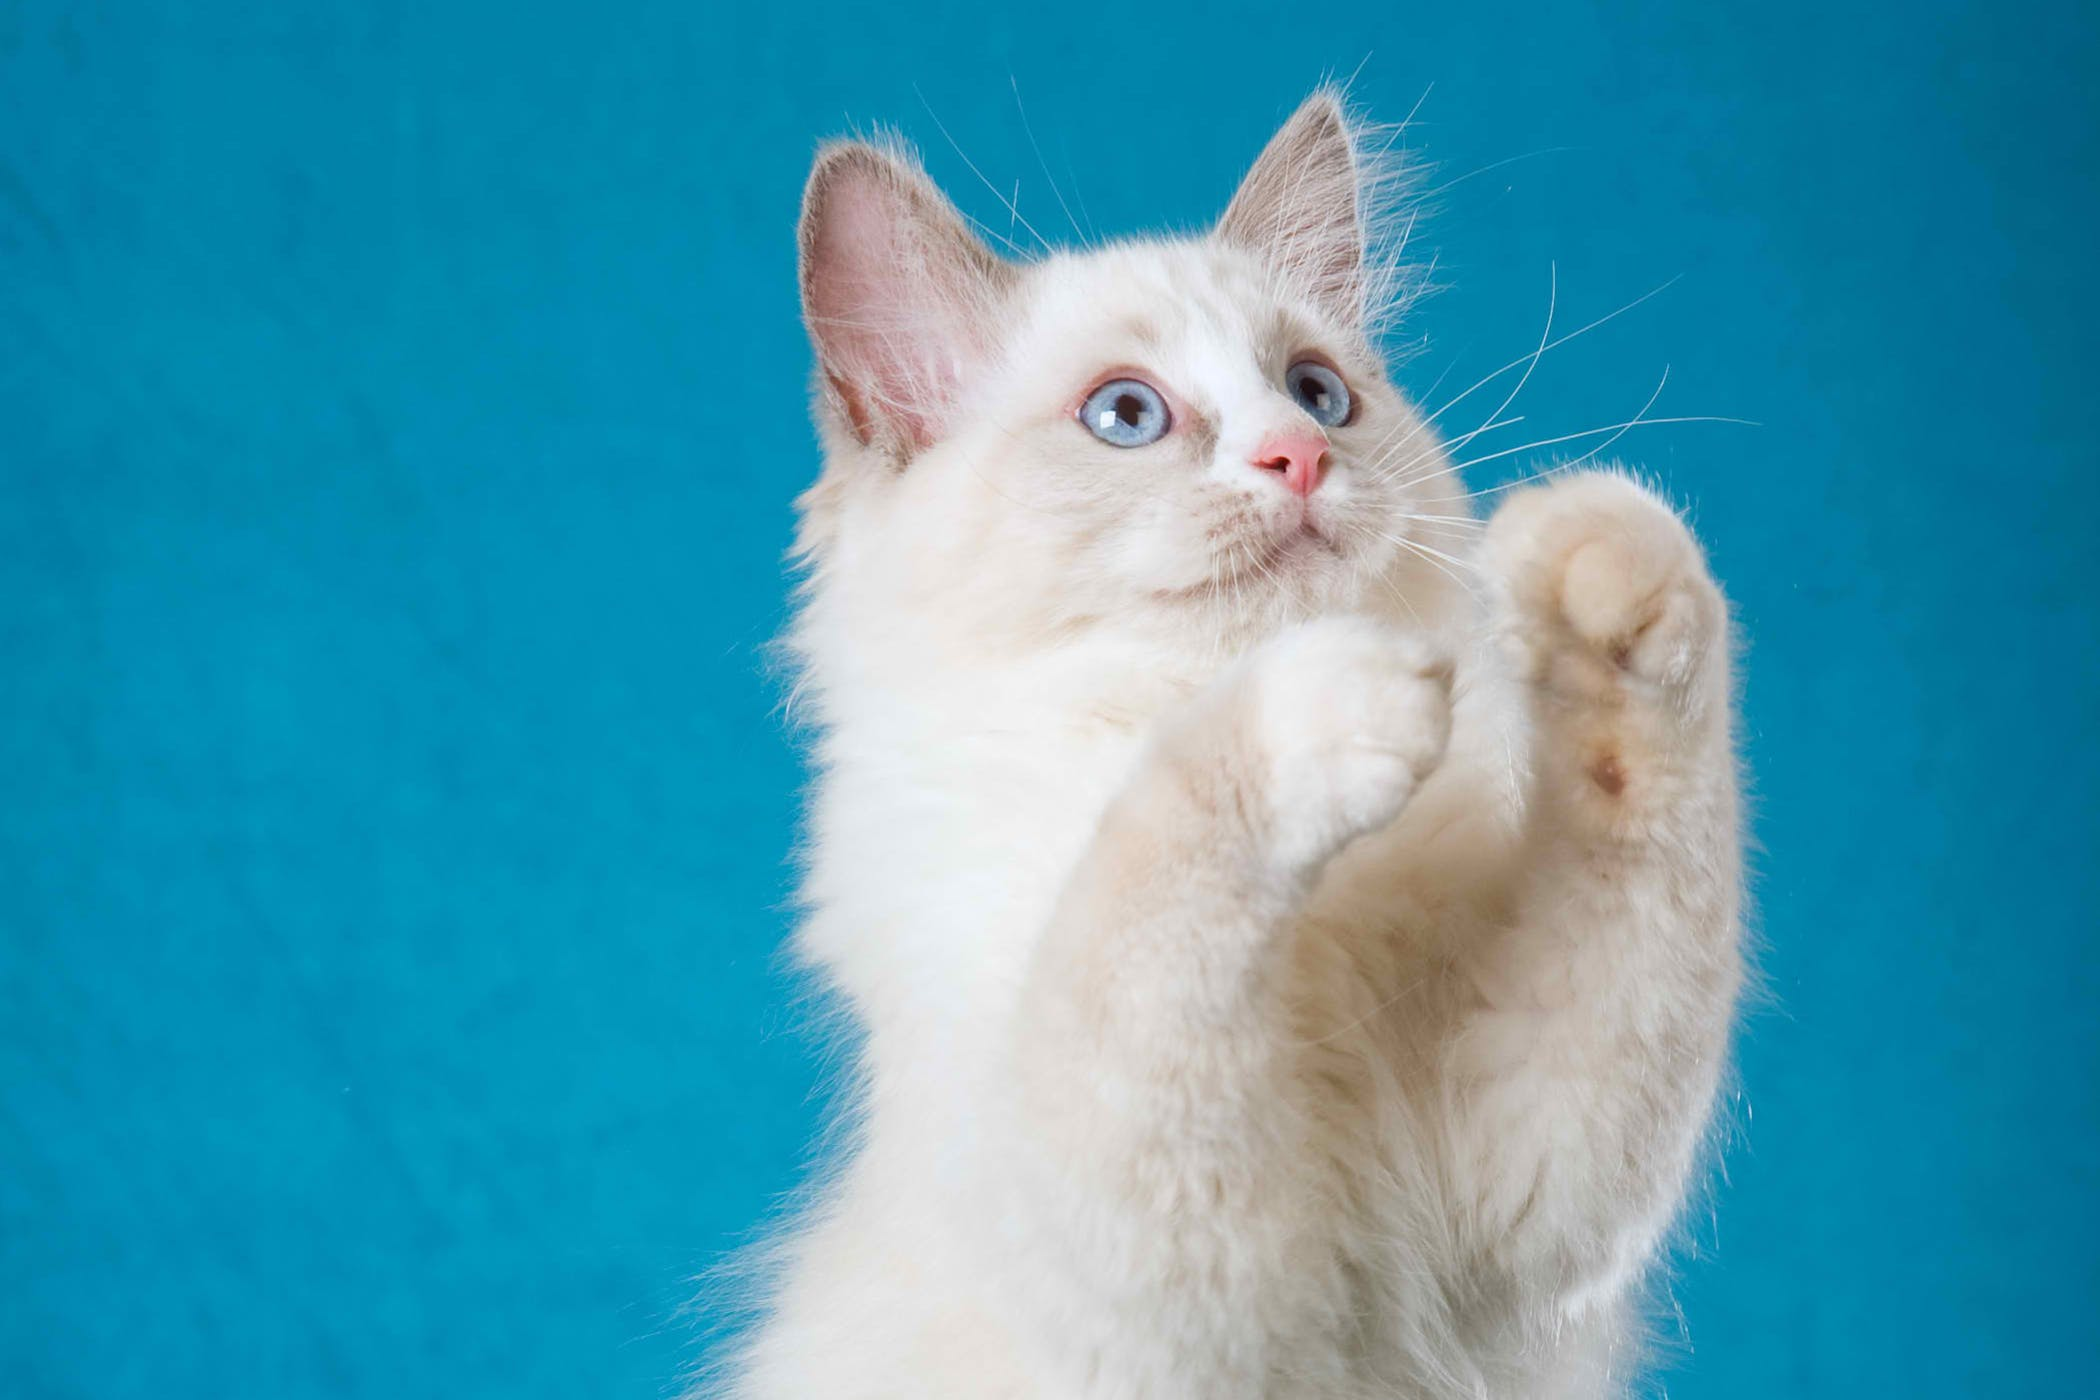 Proprioceptive Deficits in Cats